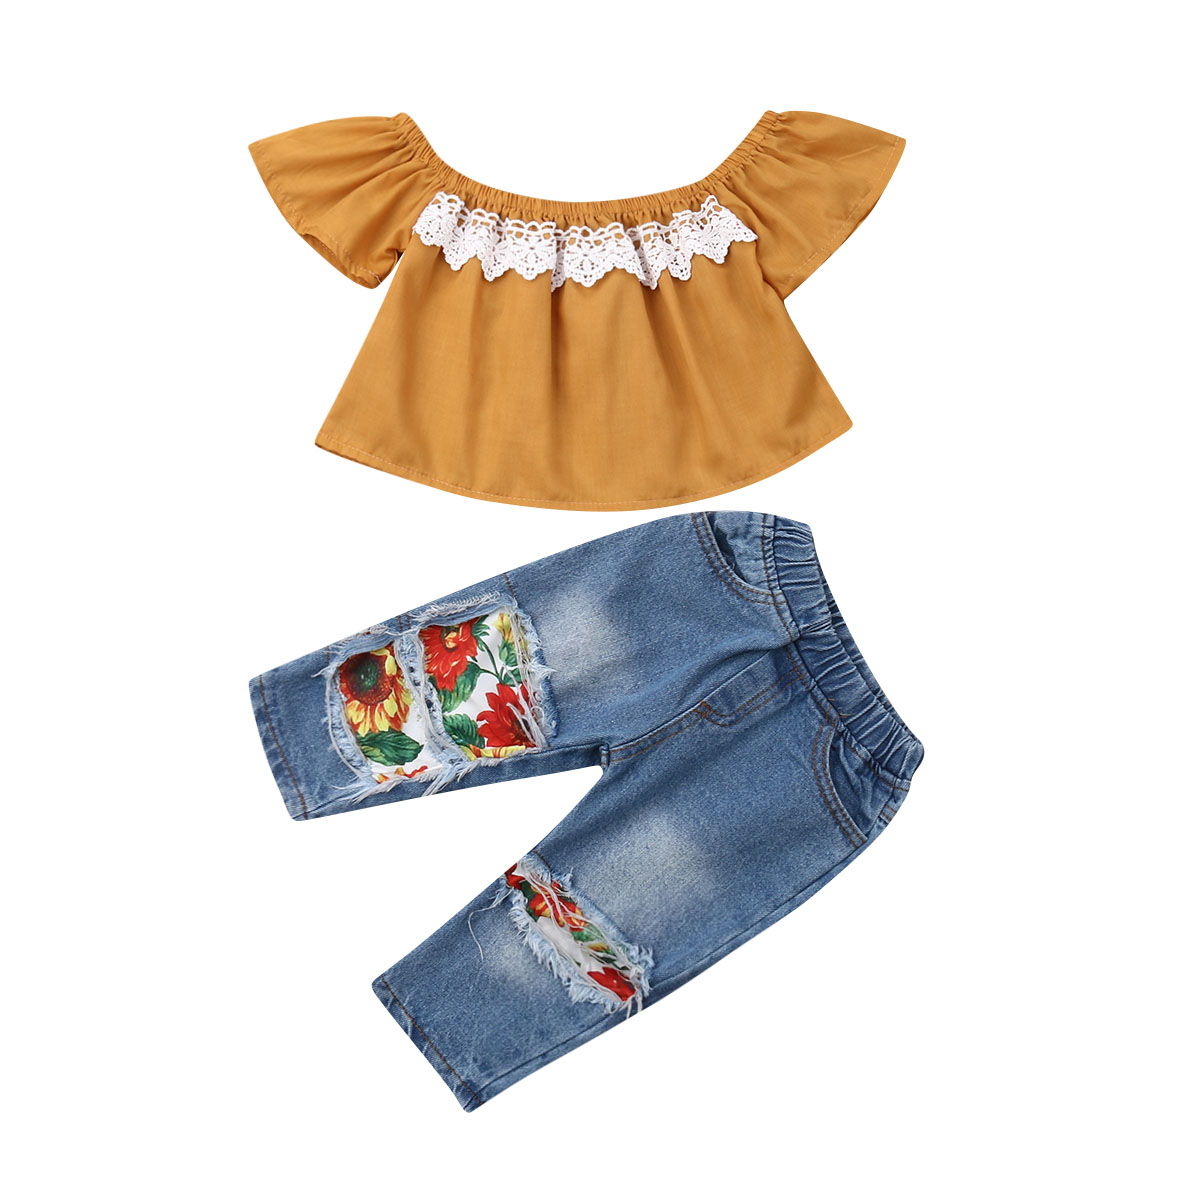 Toddler Kid Girls Flare Sleeve Ruffles Lace Layers Tops Blouse with Plaid Pants Outfits Set